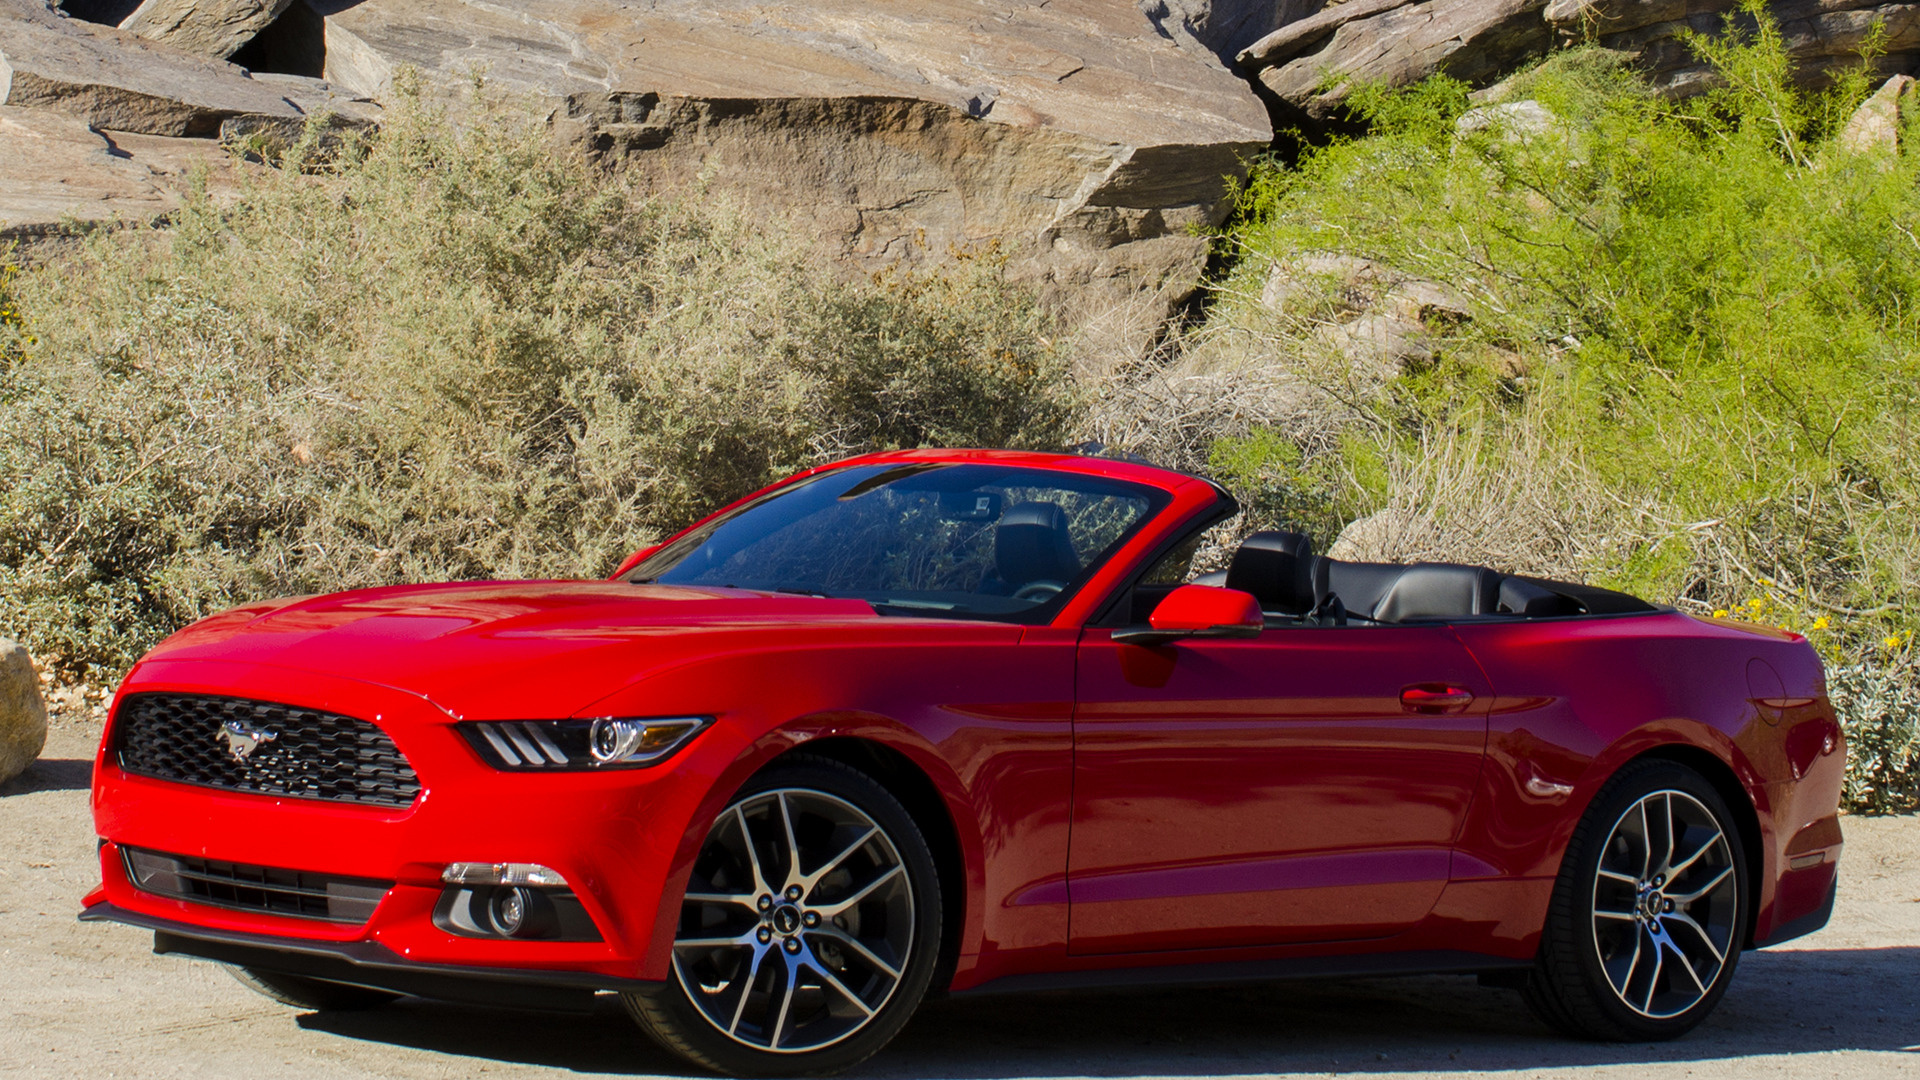 2016 Mustang Ecoboost >> 2015 Ford Mustang EcoBoost Convertible - Wallpapers and HD ...